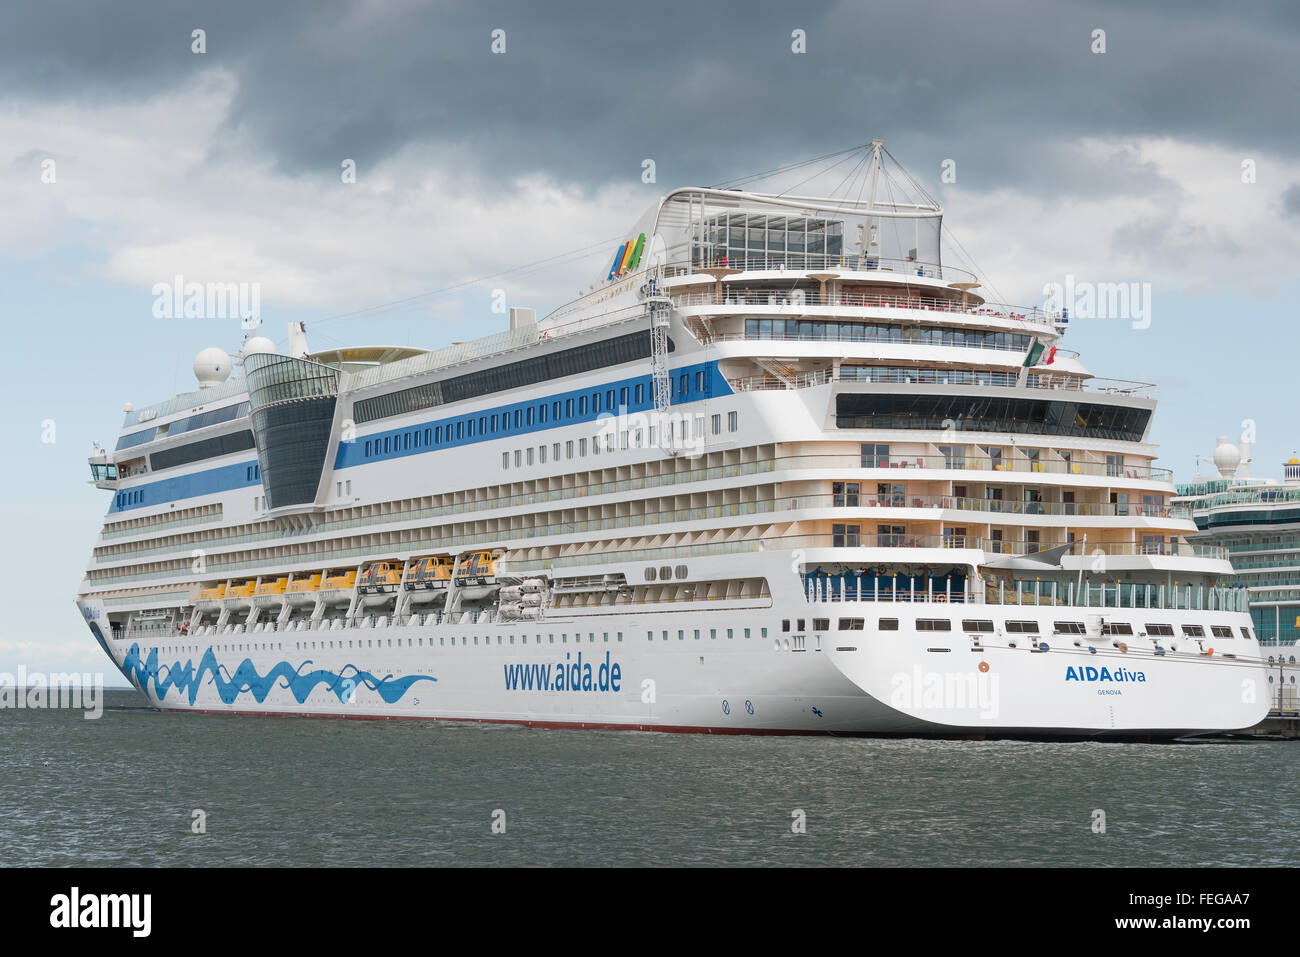 AIDA Diva cruise ship, Port of Tallinn, Tallinn, Harju County, Republic of Estonia - Stock Image